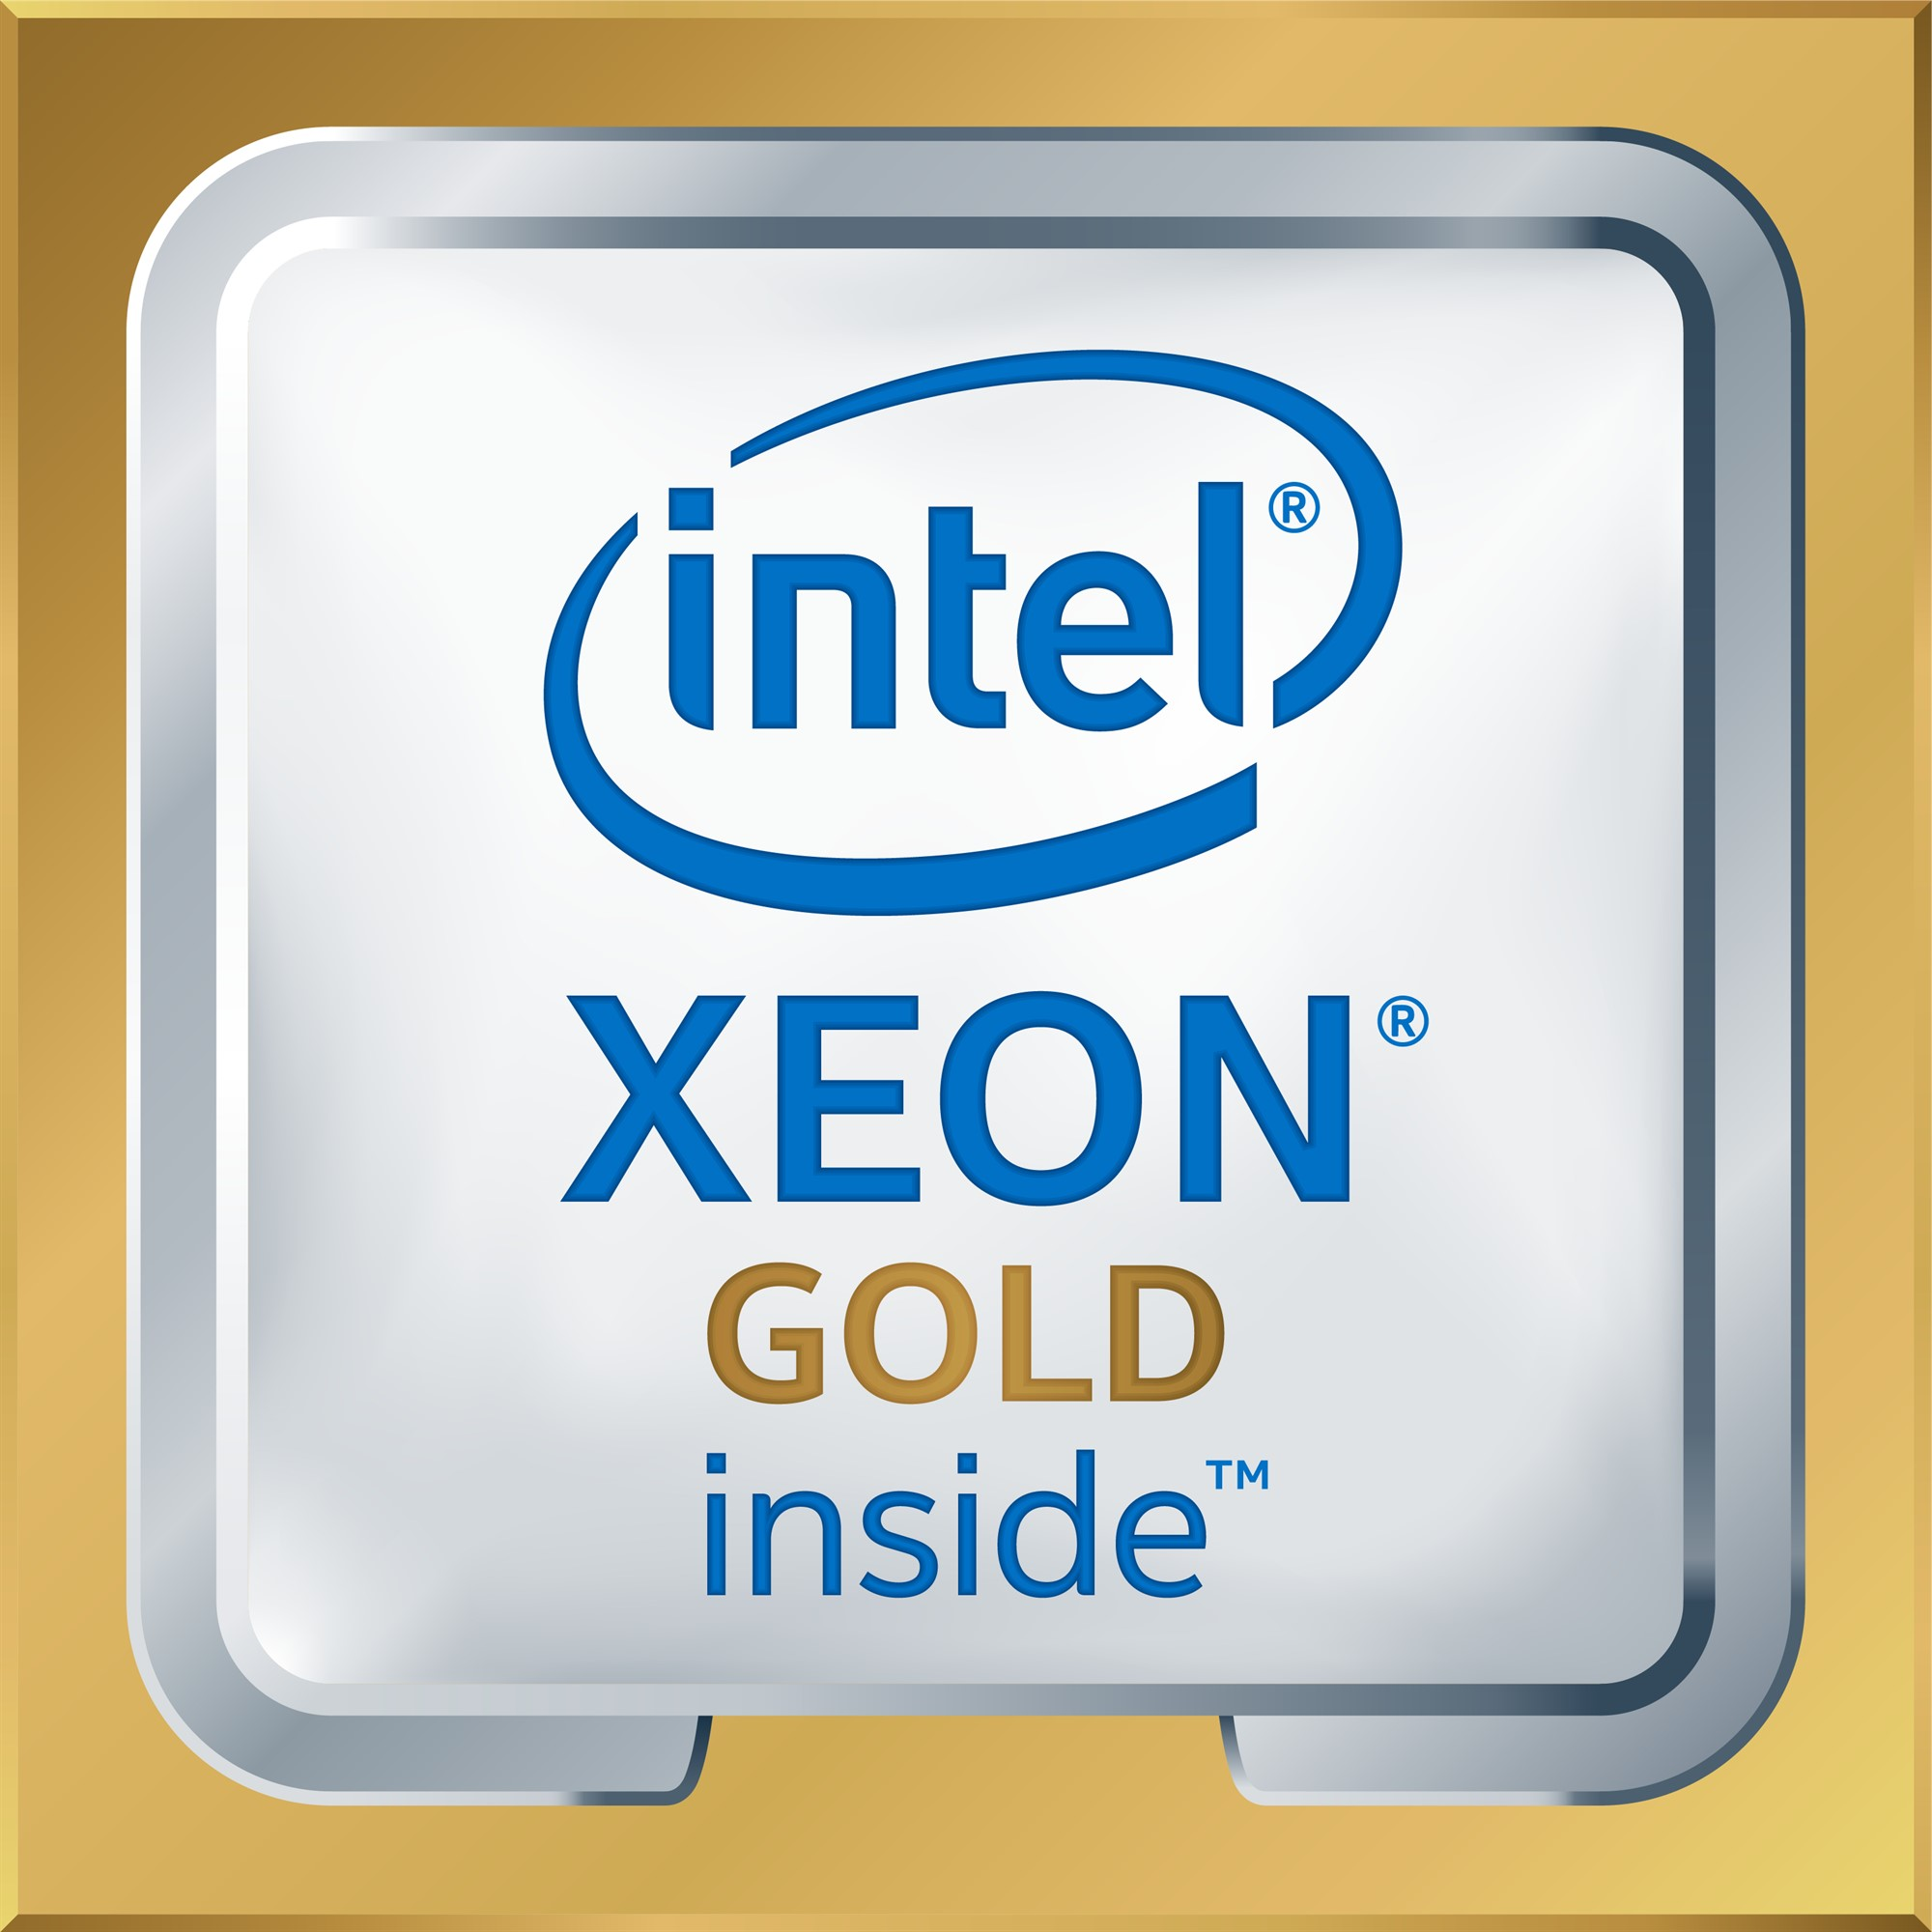 INTEL XEON GOLD 6152 PROCESSOR (30.25M CACHE, 2.10 GHZ) 2.10GHZ 30.25MB L3 BOX